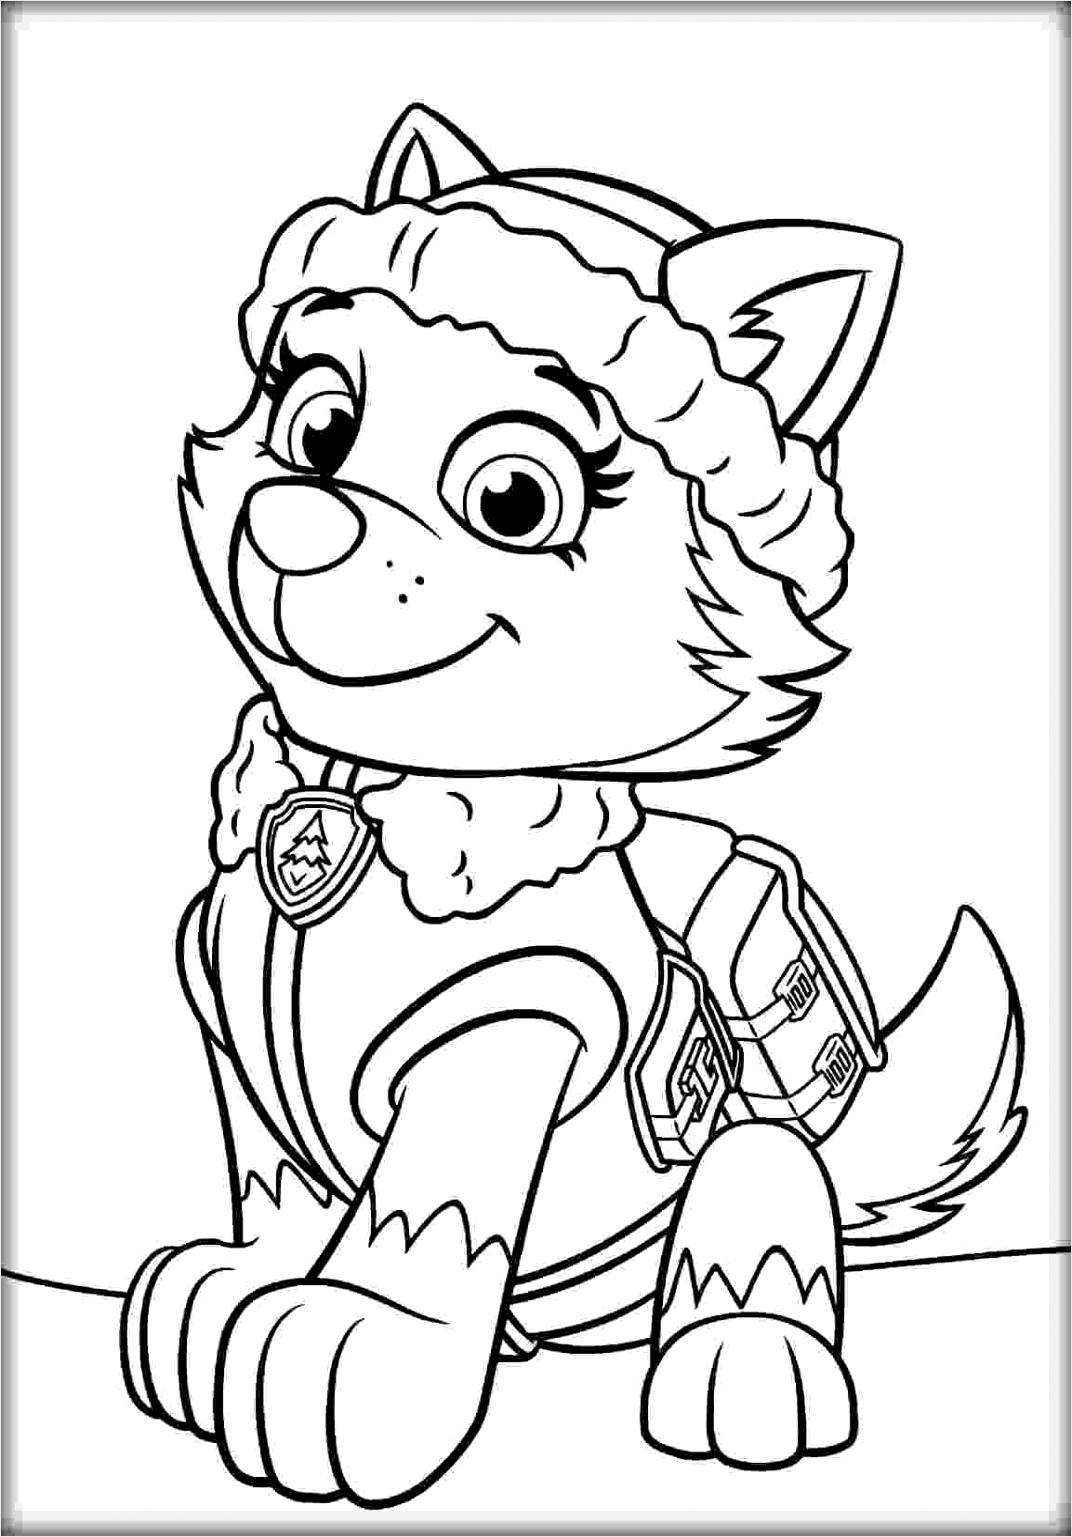 paw patrol coloring page 01 coloring page central 3 iuuui